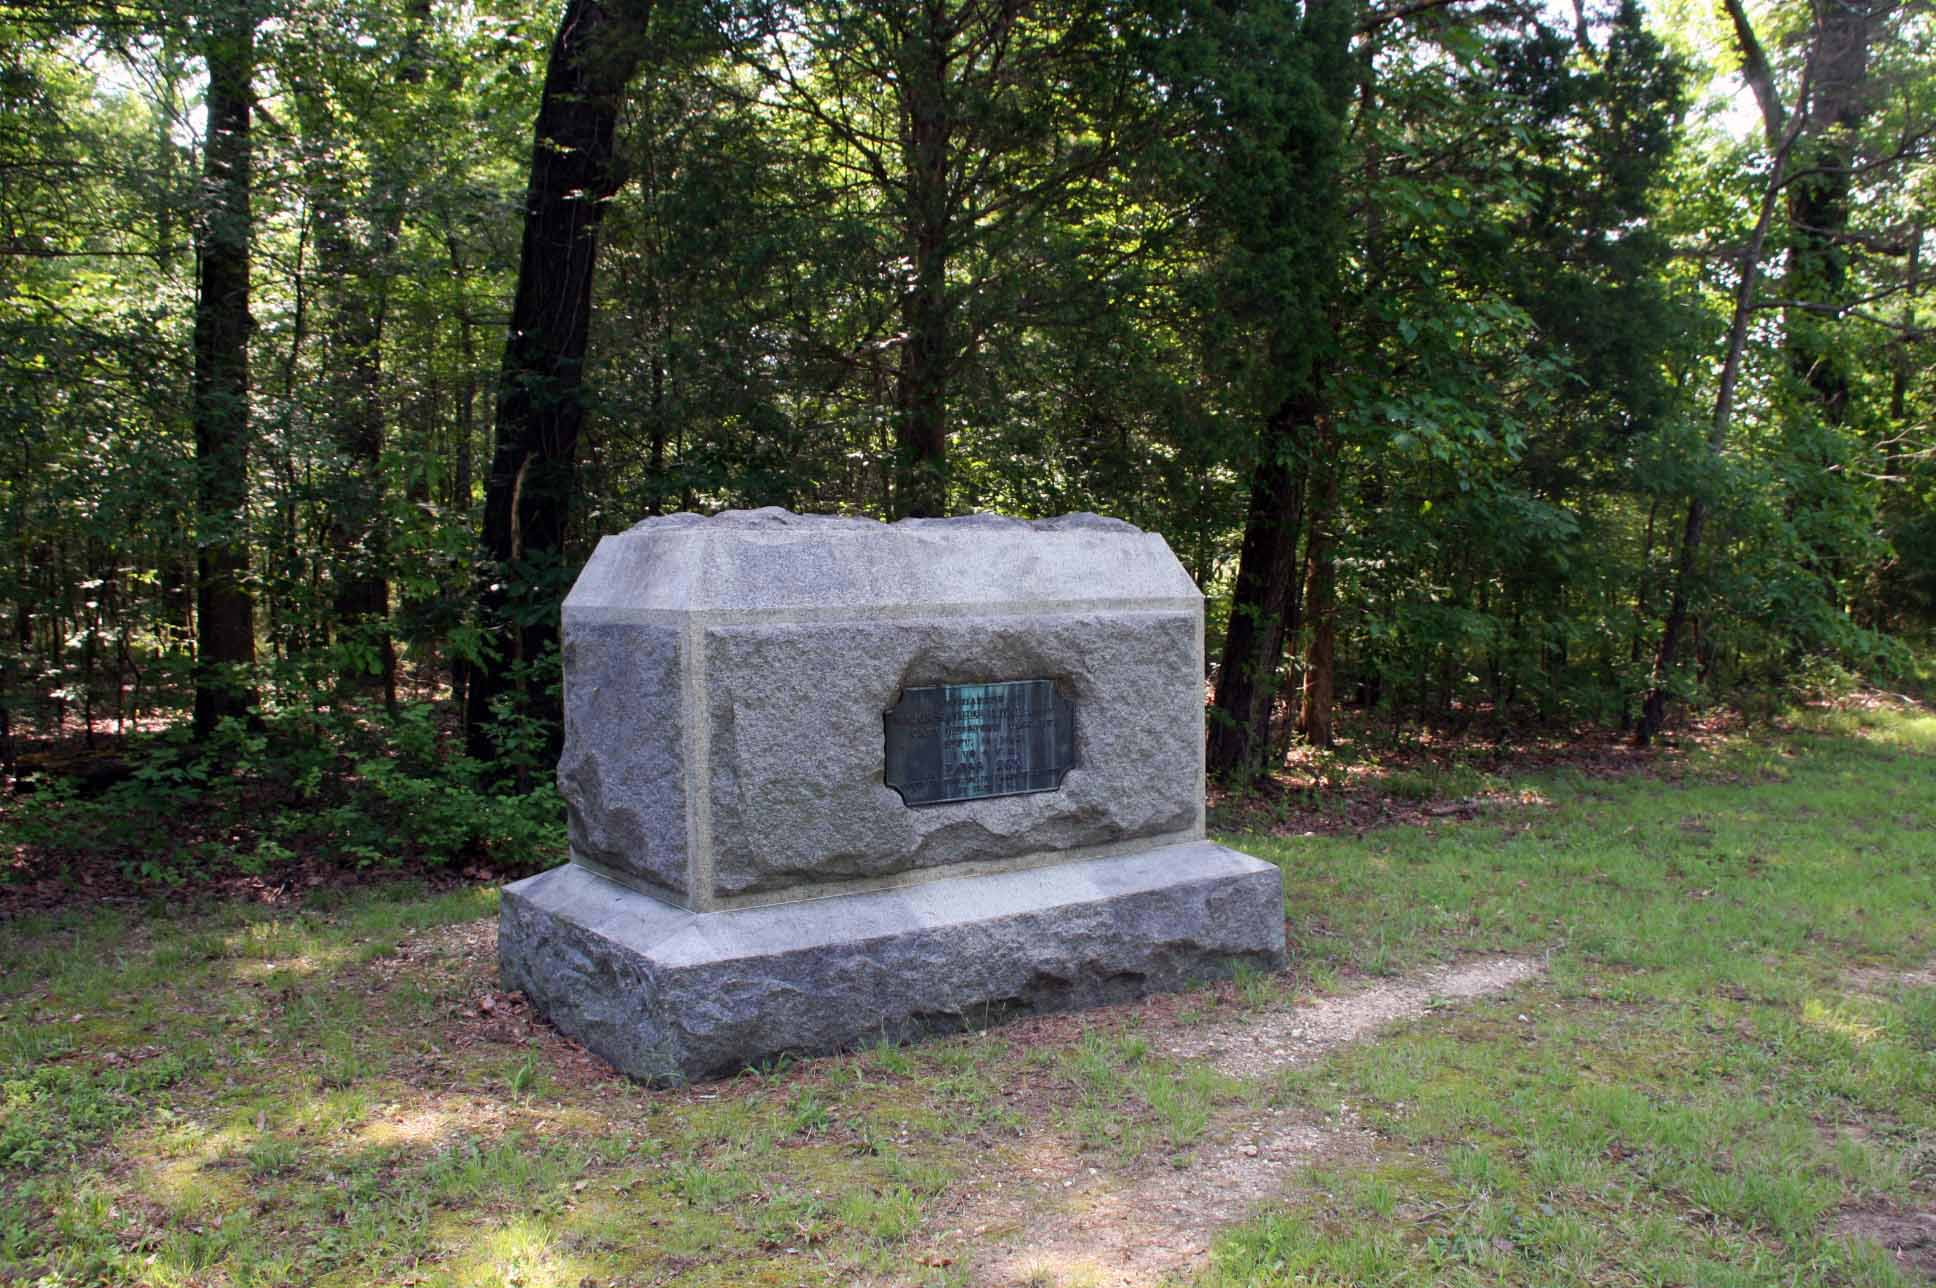 25th Illinois Infantry Regiment Monument, click photo to enlarge.